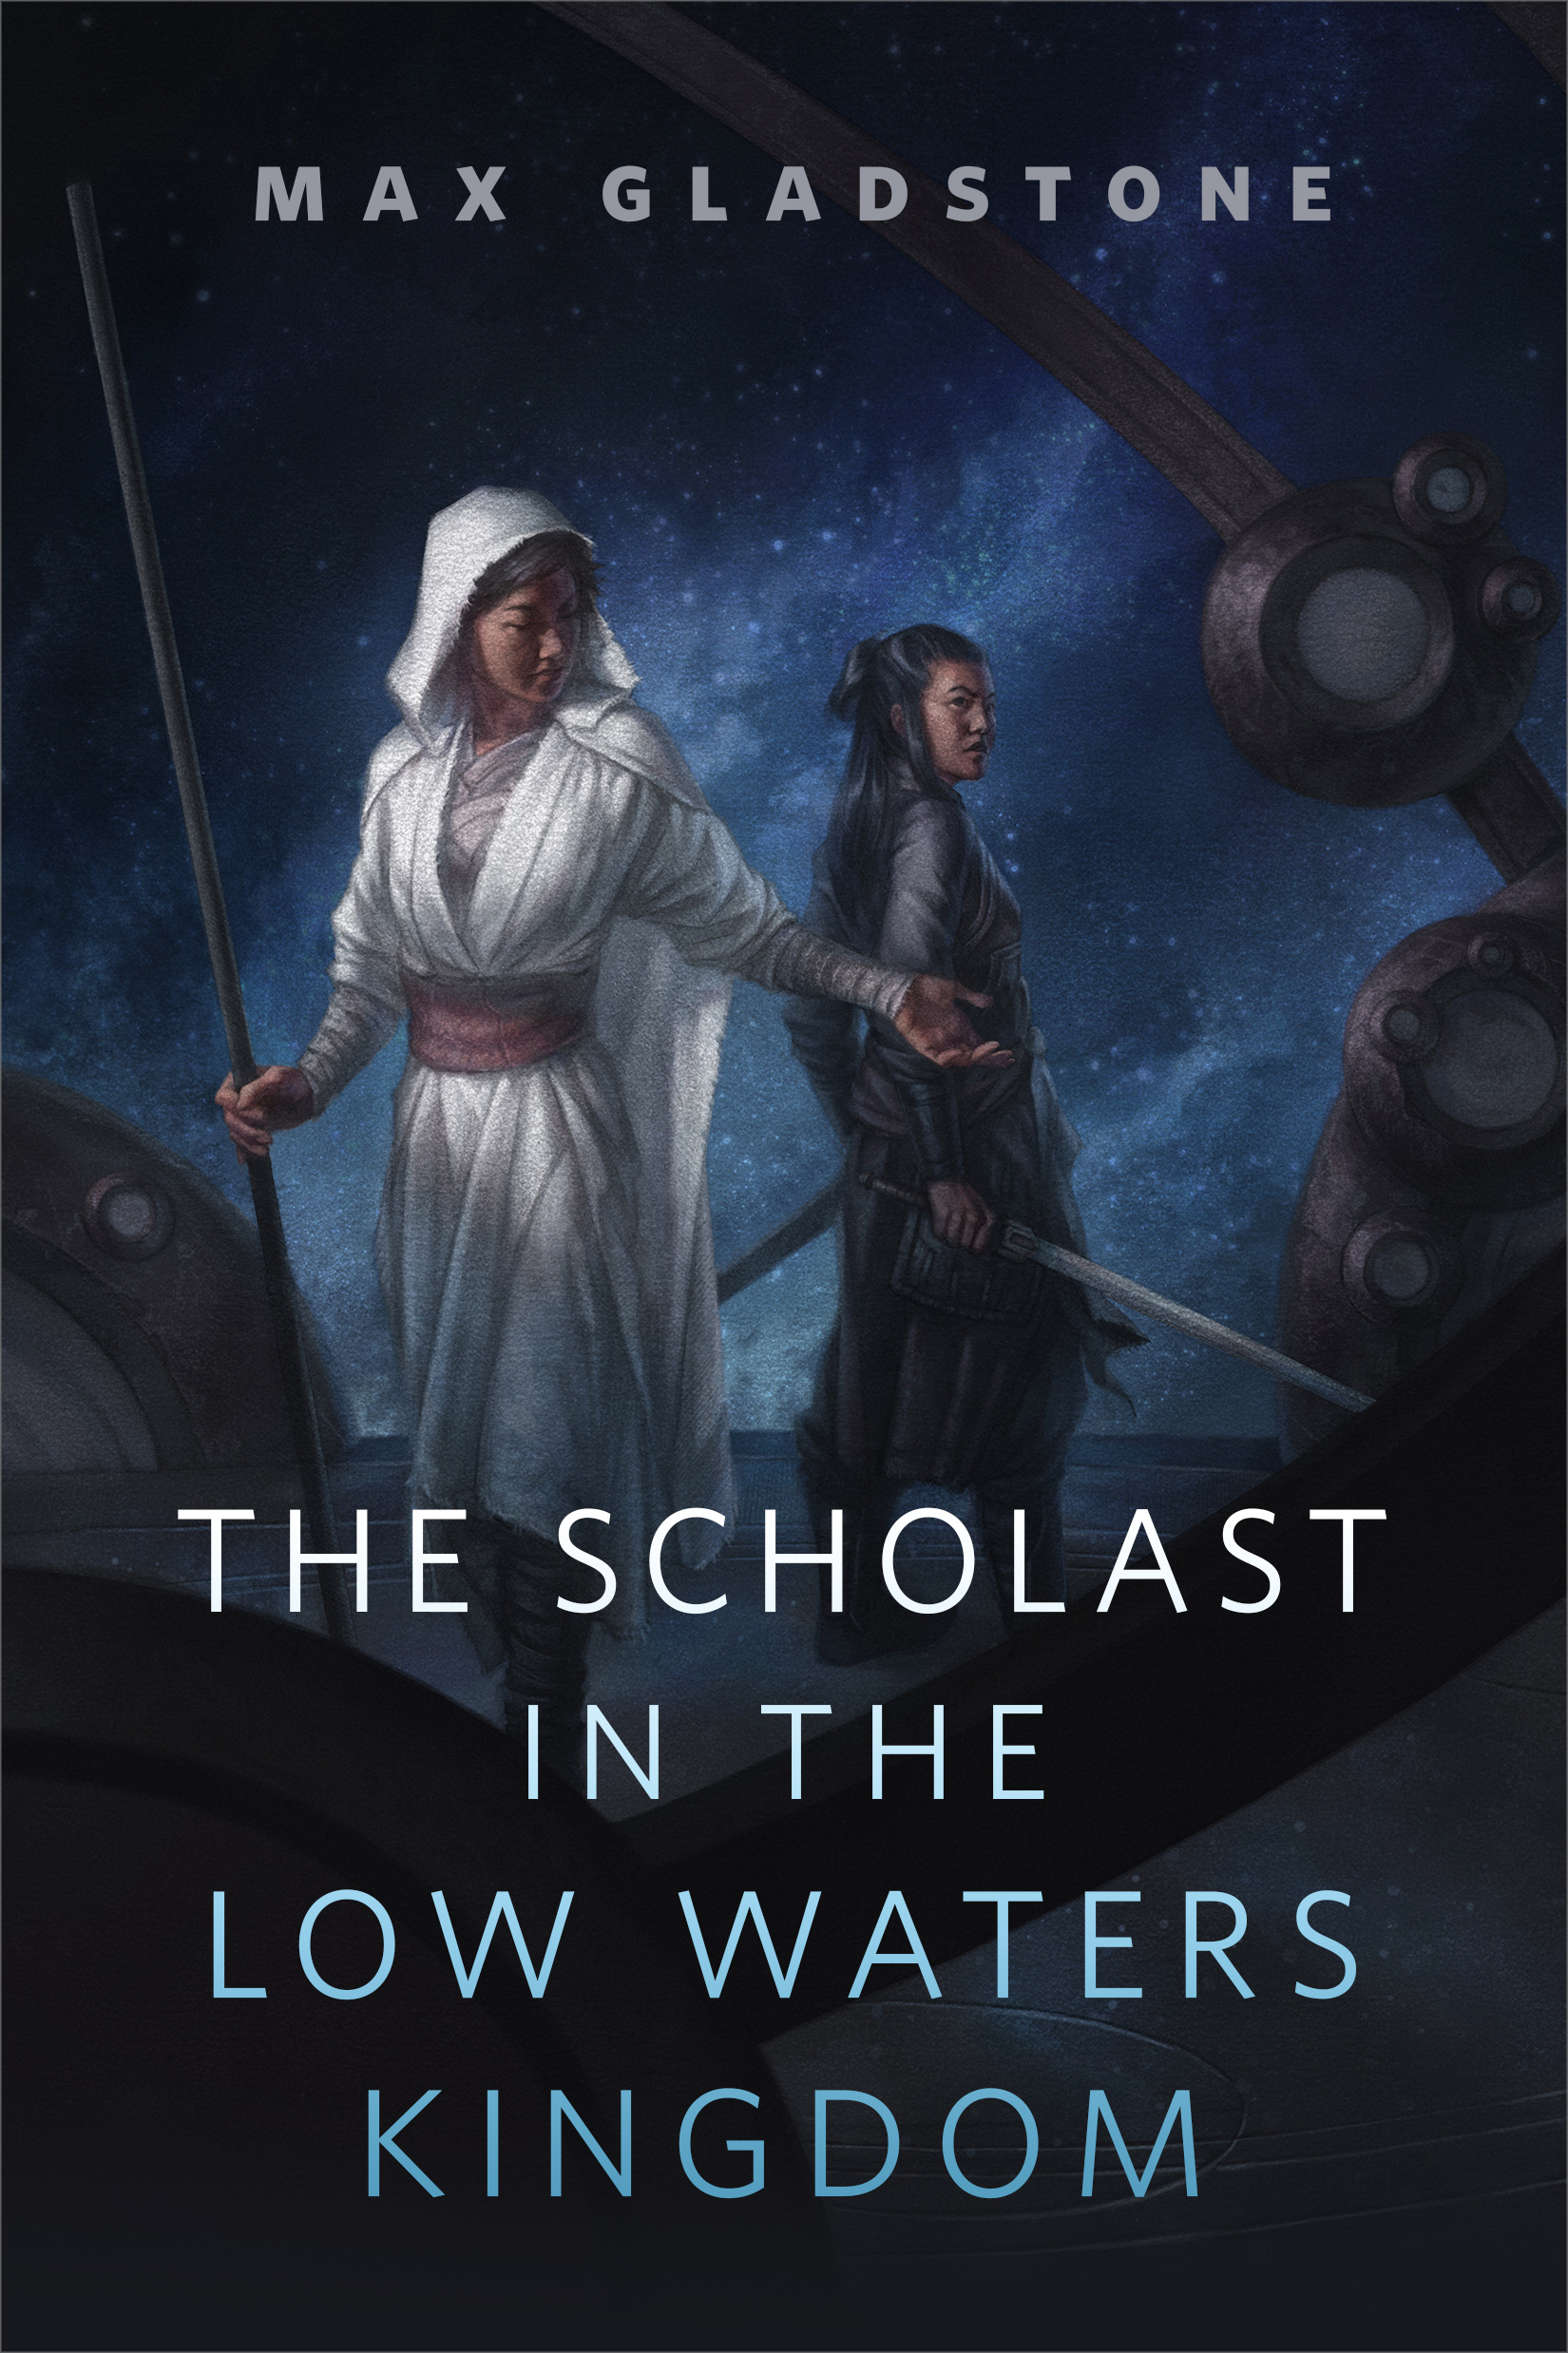 The Scholast in the Low Waters Kingdom Cover